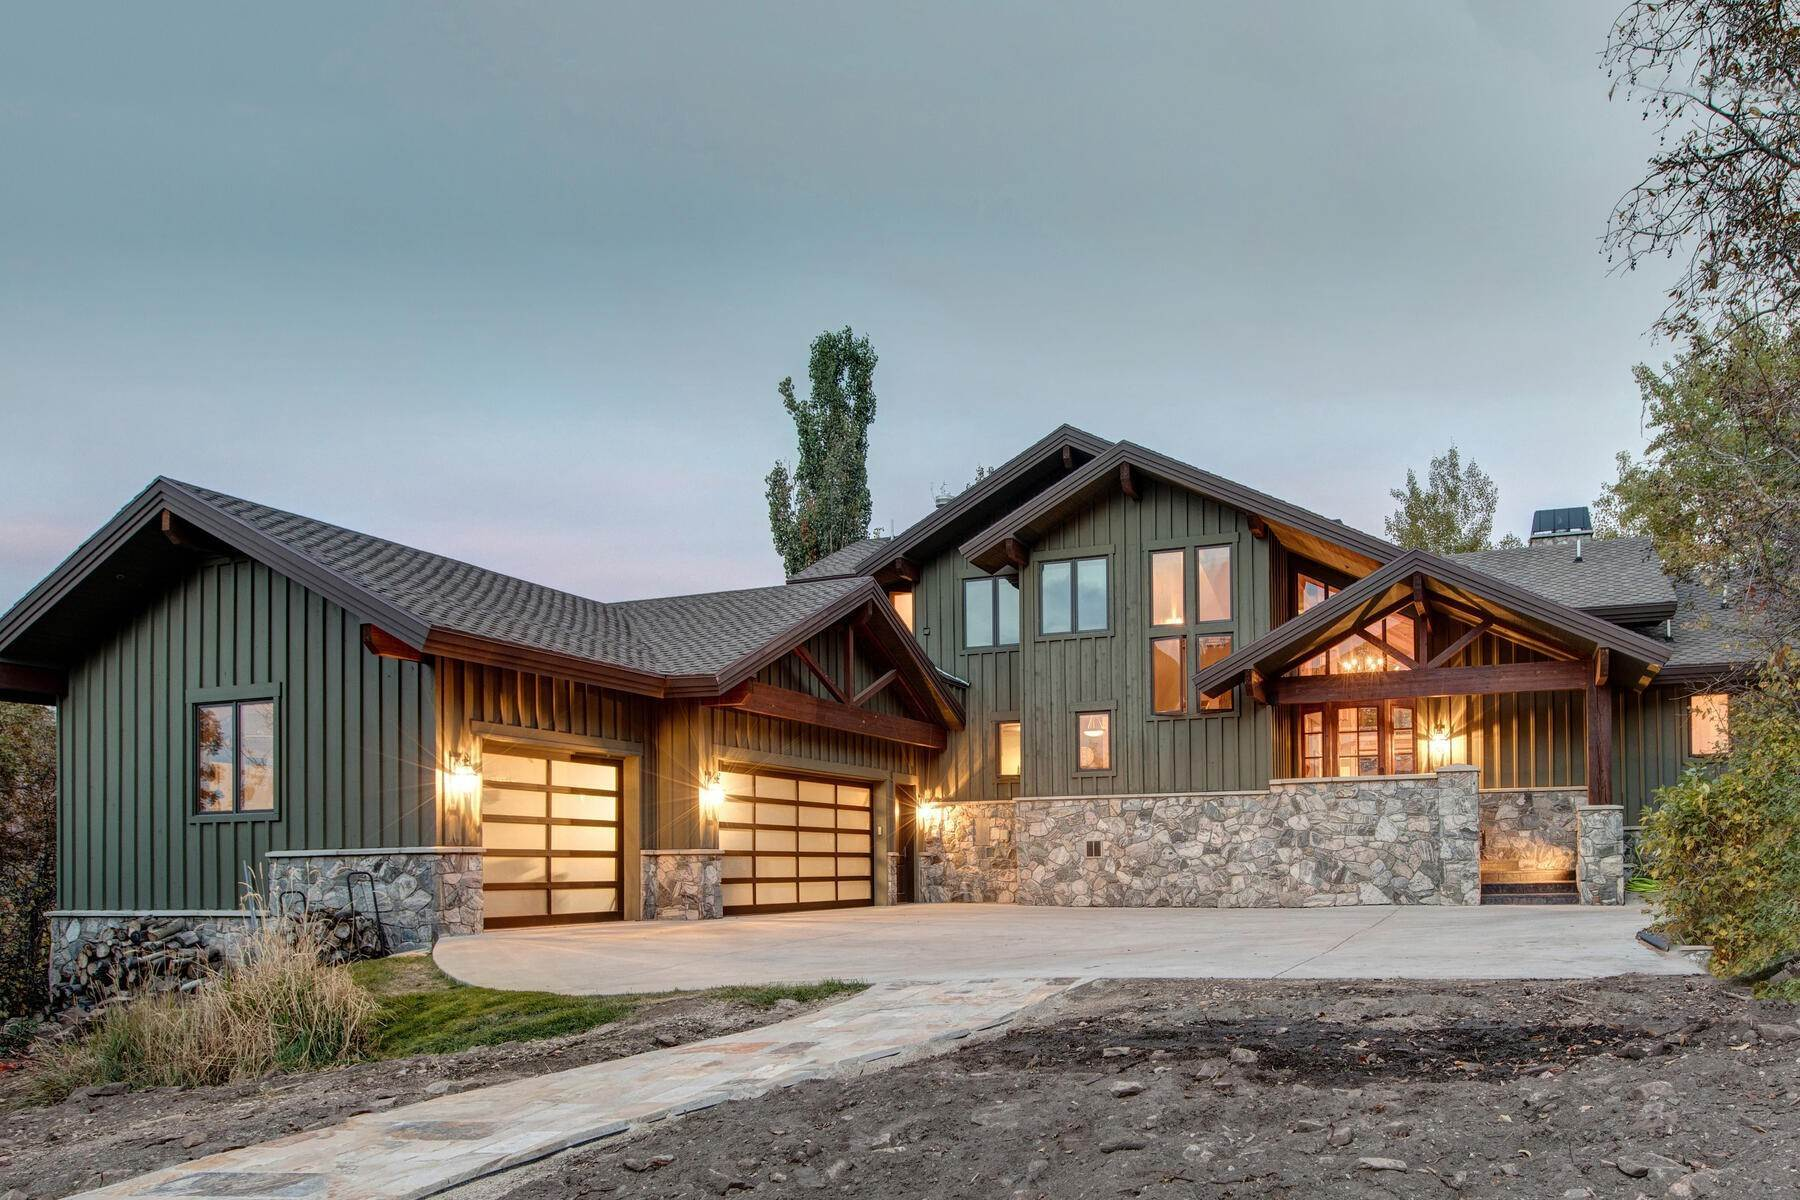 Property for Sale at Your Private Oasis in the Heart of Park City 2692 Ruminant Road Park City, Utah 84060 United States